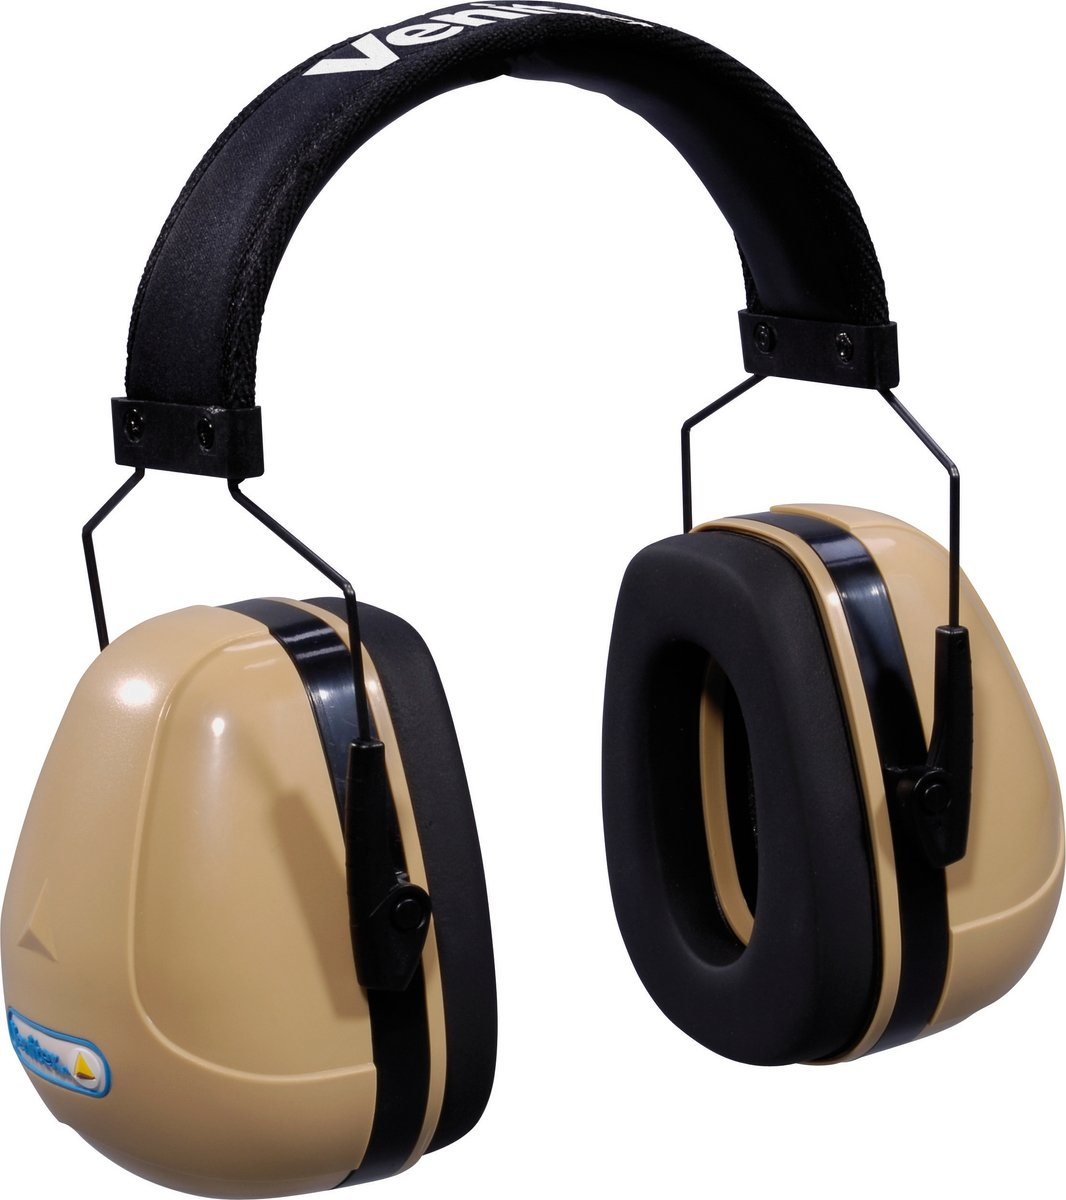 Venitex Delta Plus Magny-Cours High Performance Ear Defenders Ear Protection Snr 32 - - Amazon.com